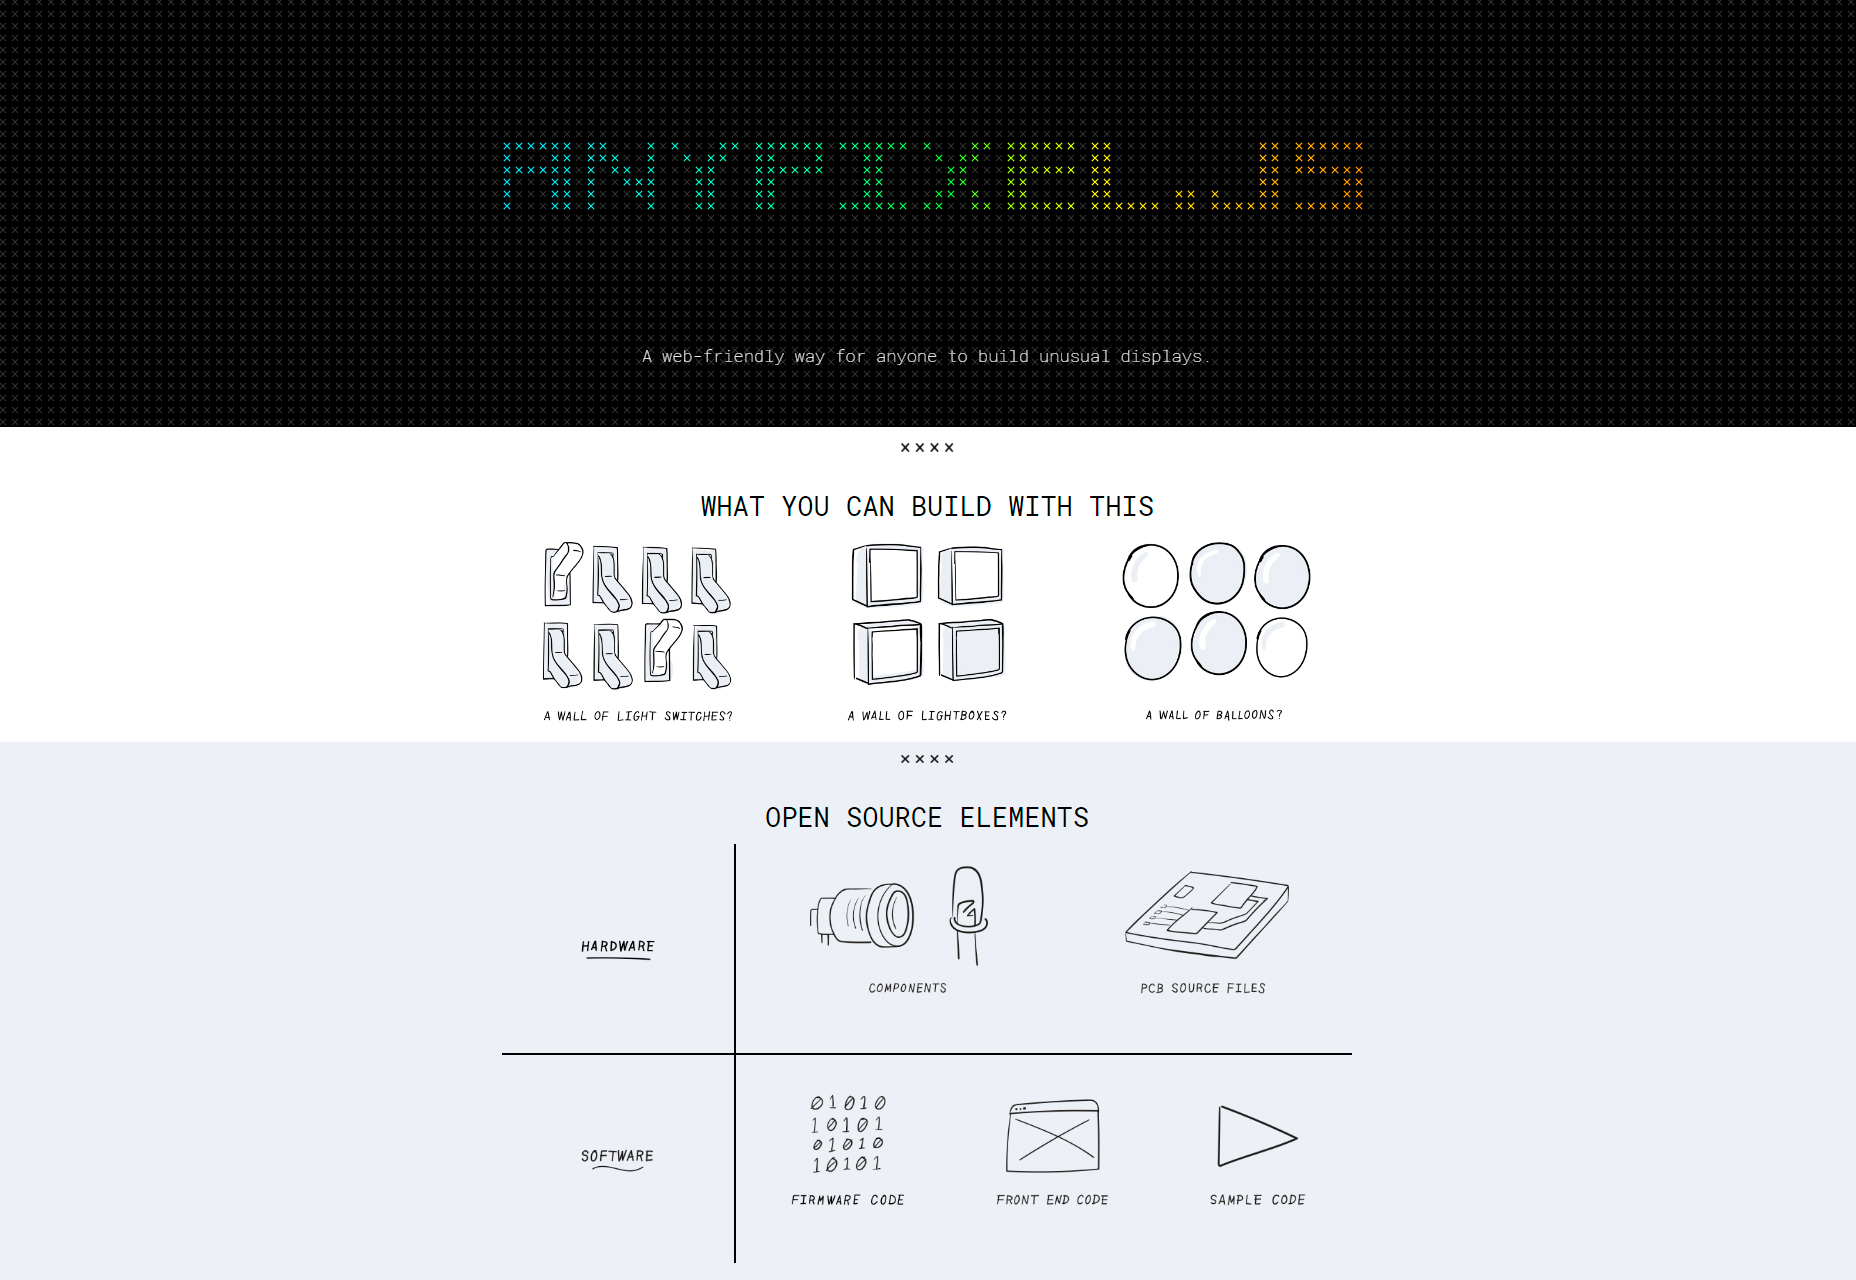 anypixeljs-software-hardware-displays-framework